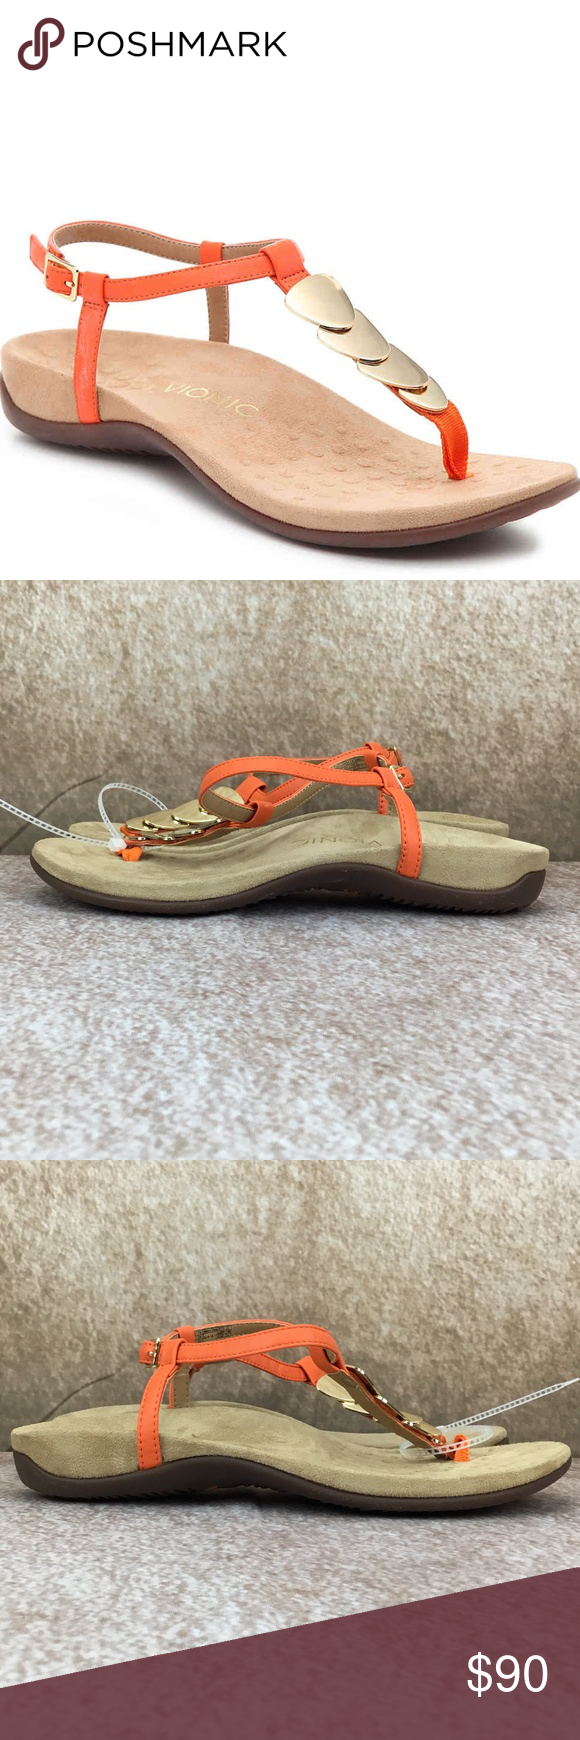 b501651c590c NWT VIONIC Rest Miami Sandals Orange Suede Shoes Vionic    New in ...